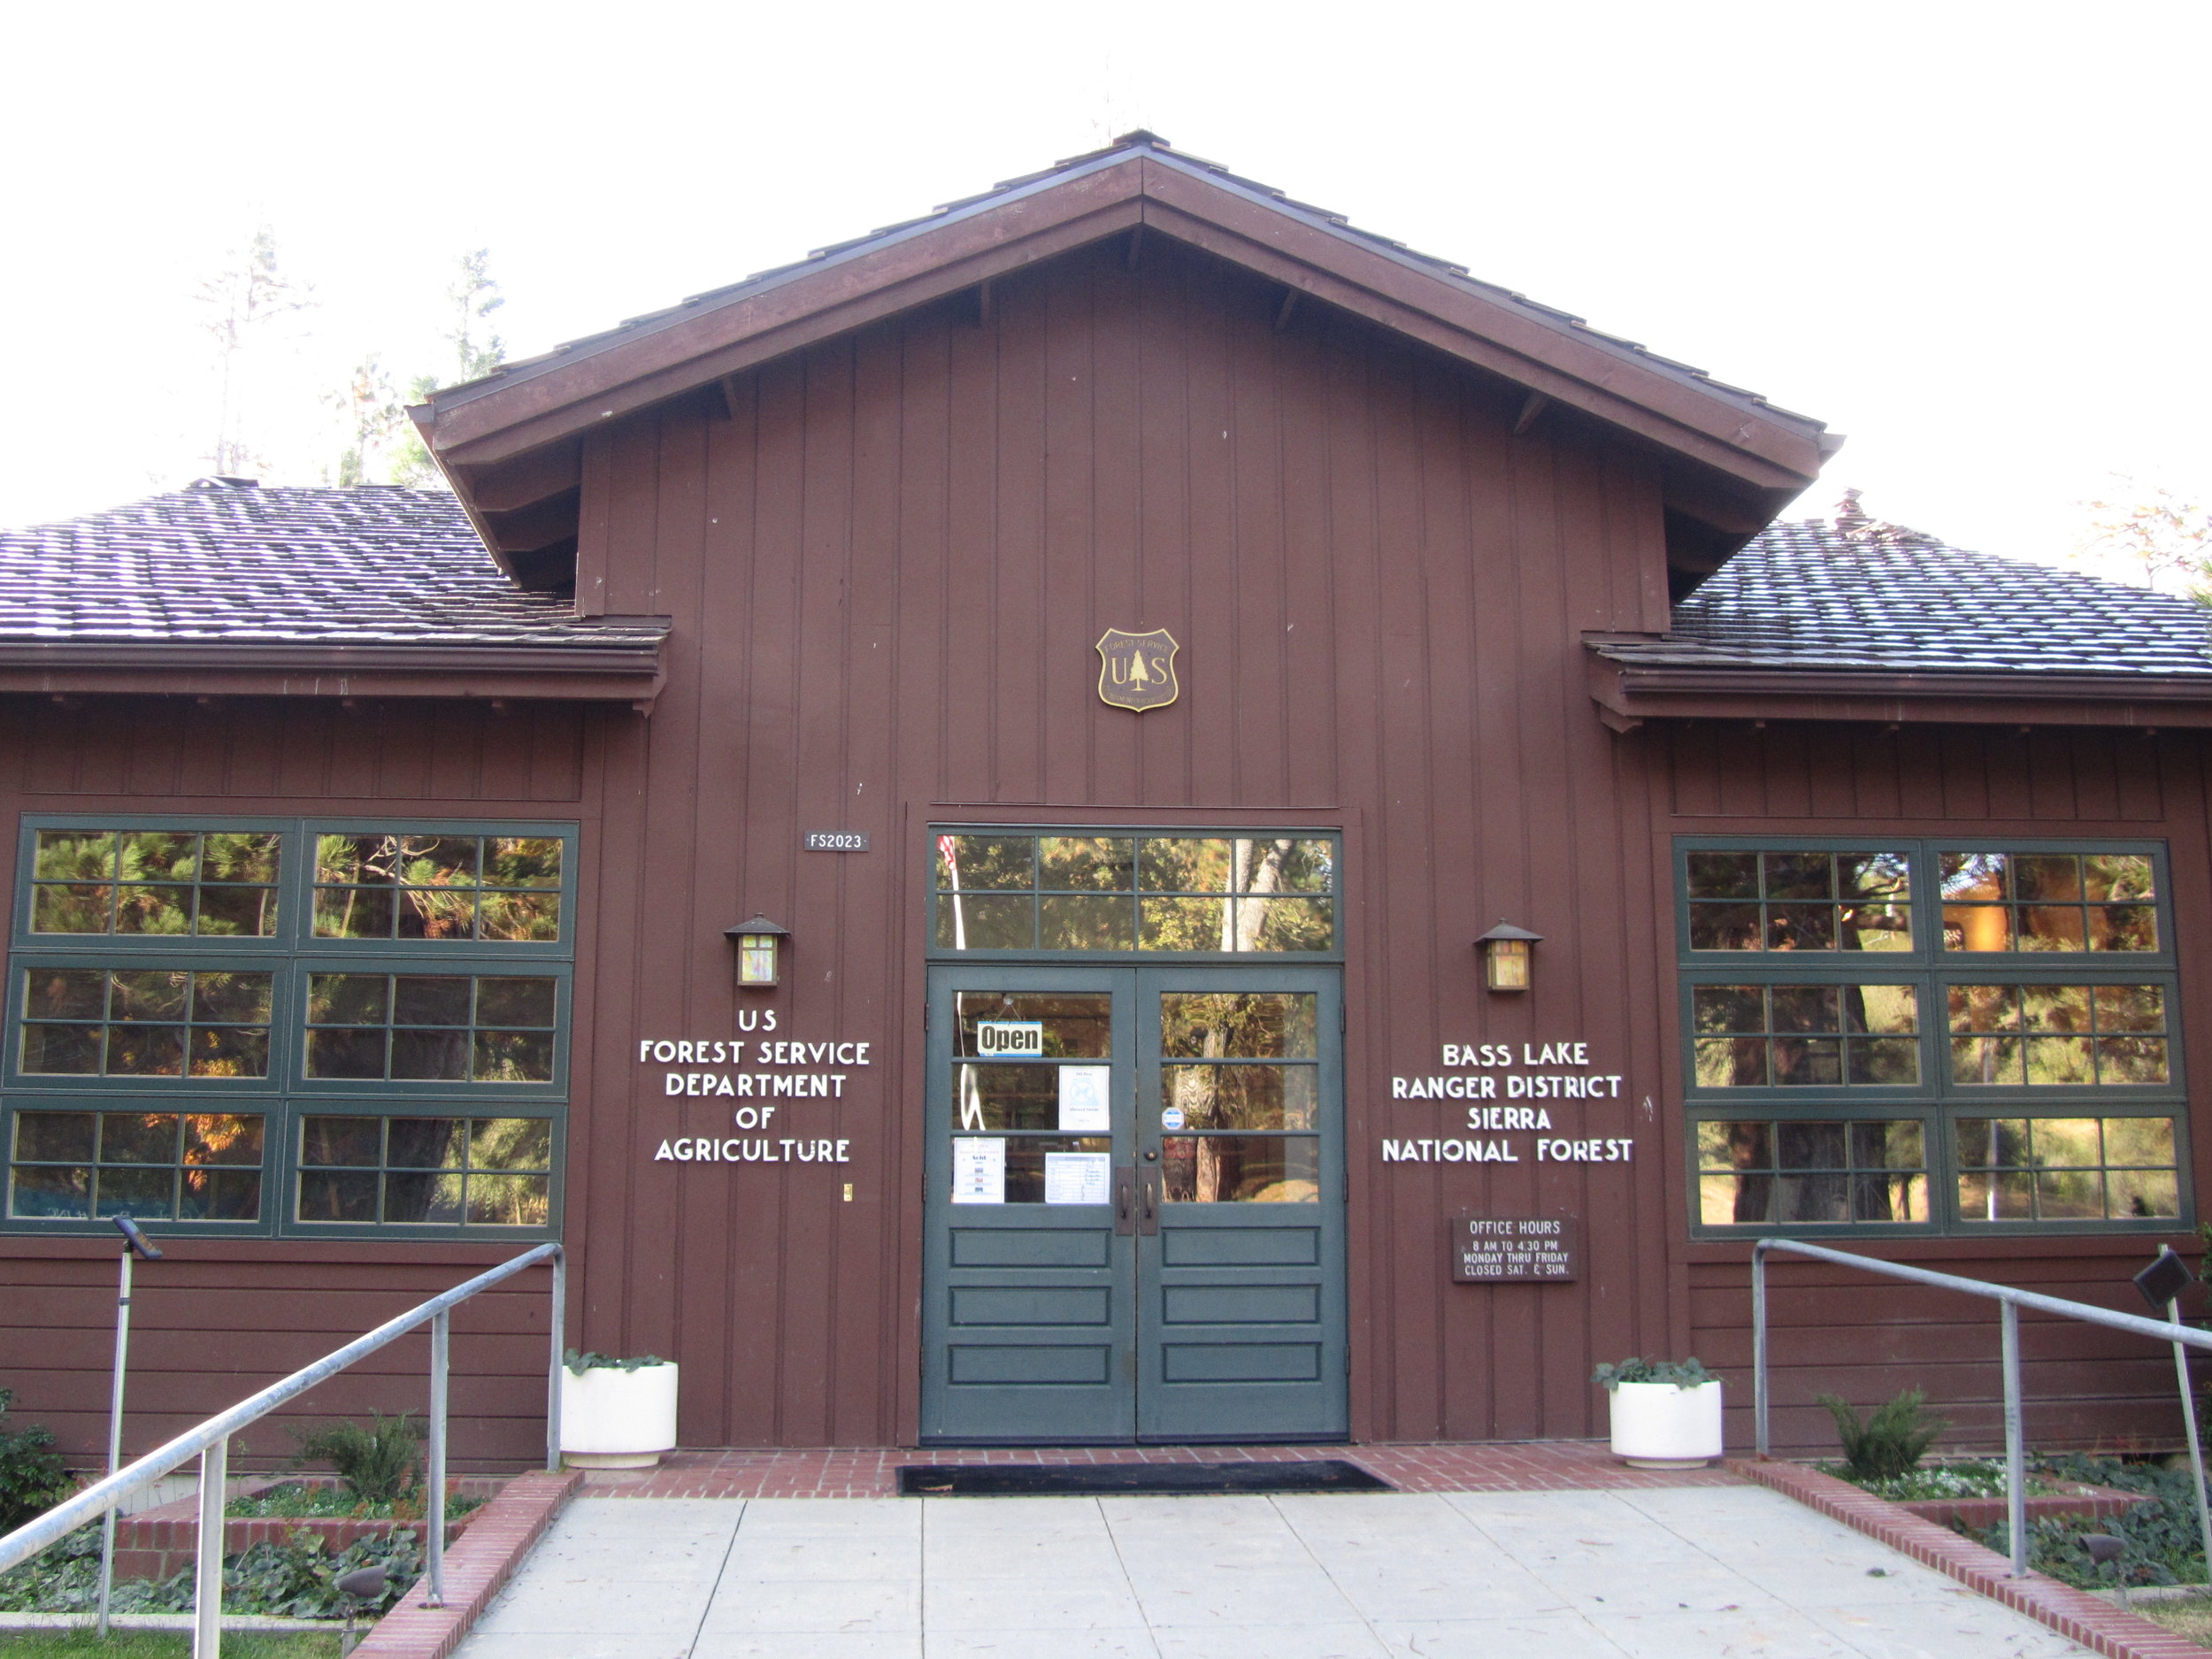 BASS LAKE RANGER DISTRICT OFFICE LOCATED IN NORTH FORK, CA